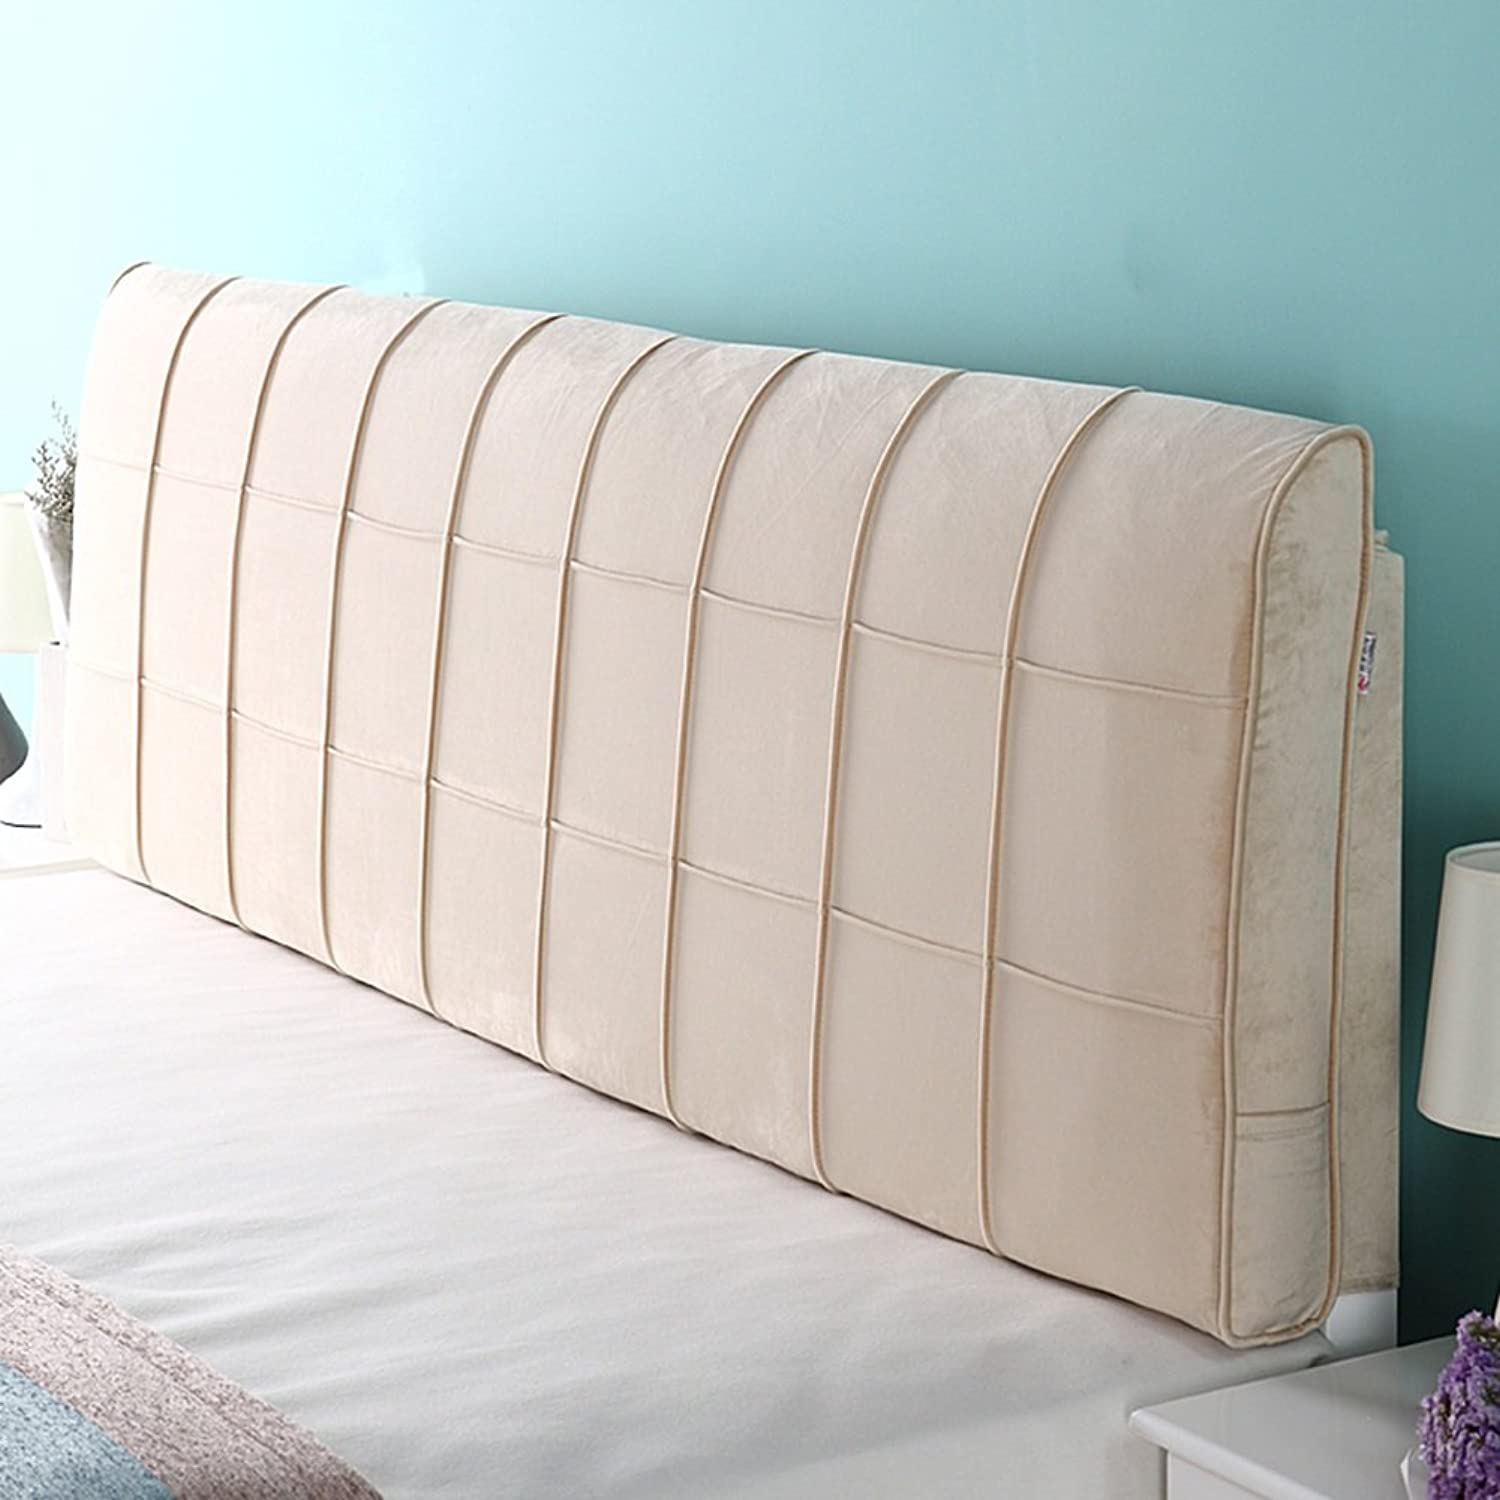 WENZHE Upholstered Fabric Headboard Bedside Cushion Pads Cover Bed Wedges Backrest Waist Pad Cloth Art Large Back Simple Modern Multifunction Washable, There Is Headboard   No Headboard, 4 colors, 6 Sizes ( color   4  , Size   With headboard-70cm )